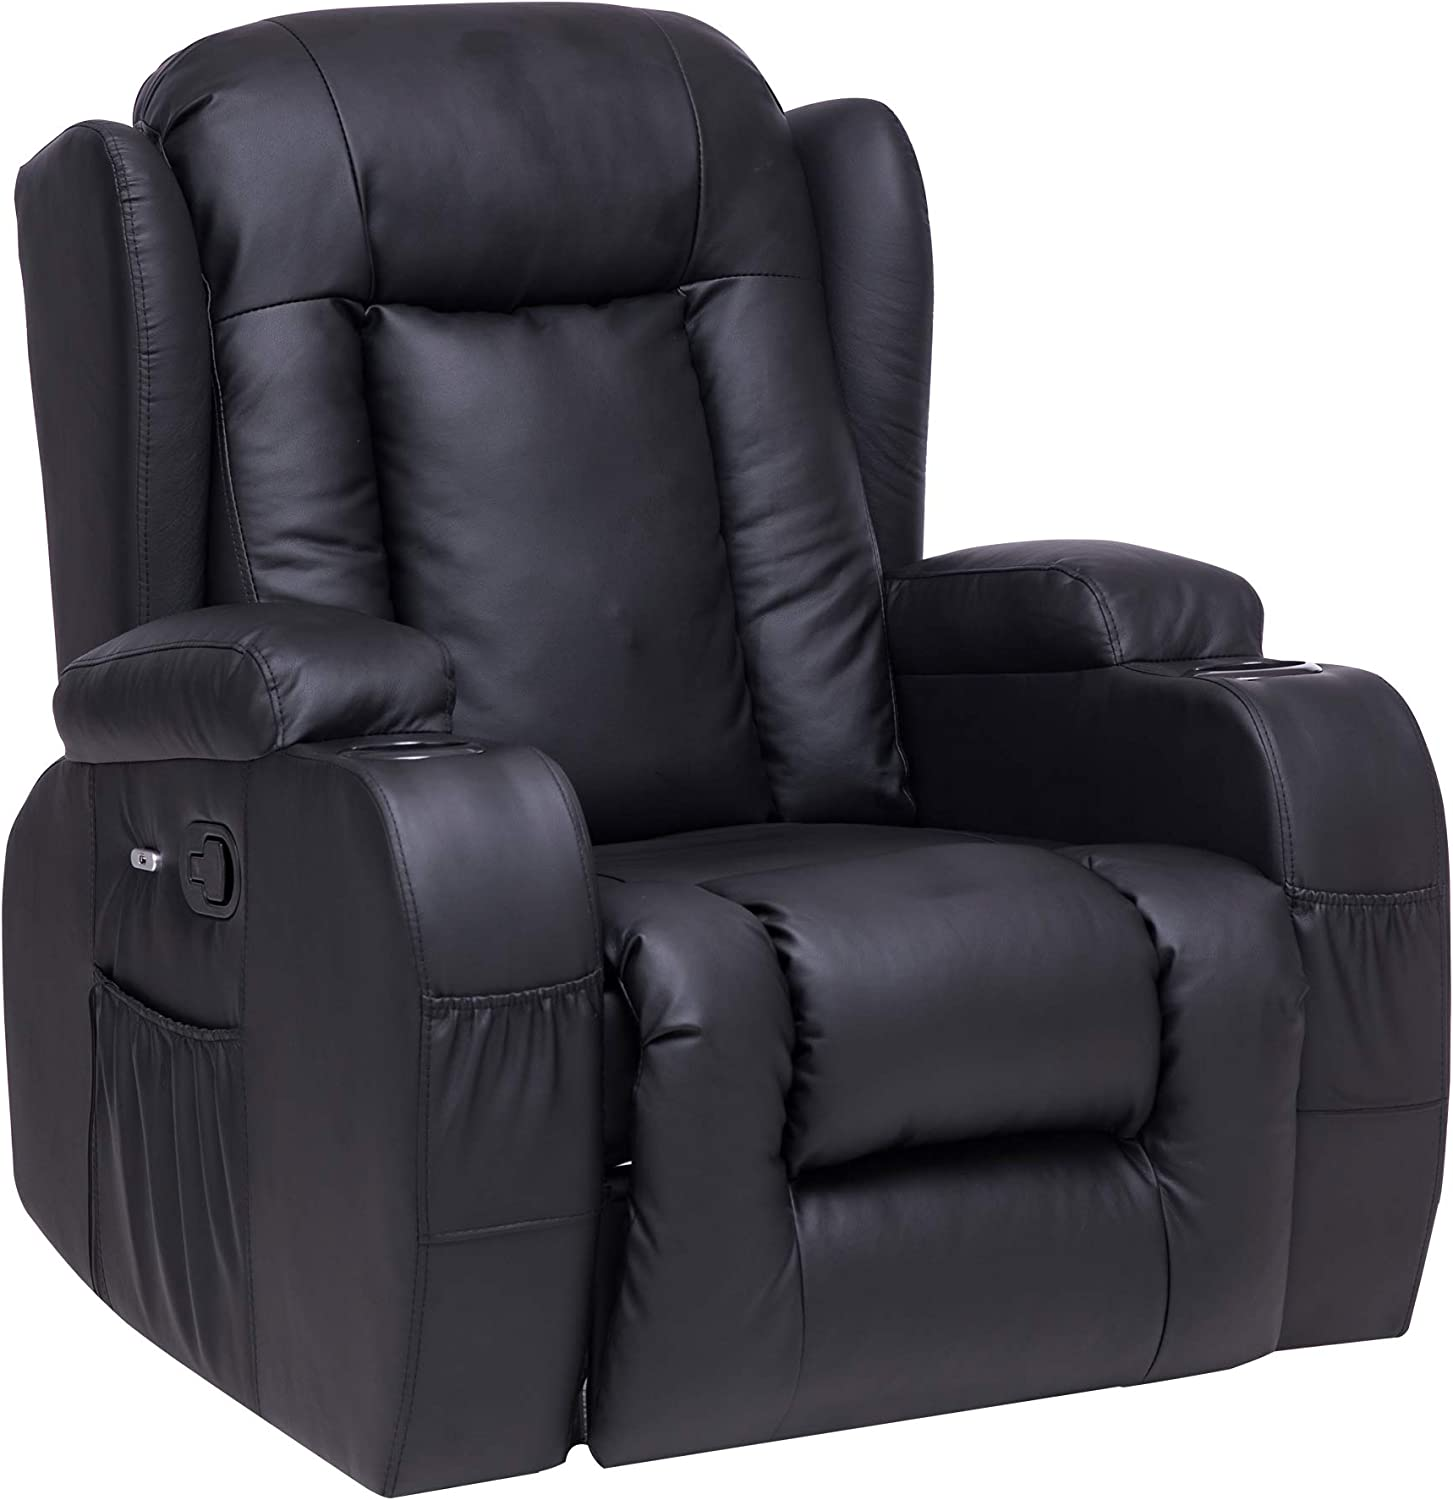 Recliner Chair Sofa PU Leather Chaise Lounge Indoor with Cup Holders and USB Ports for Living Room Home Theater Modern Seat (Black)